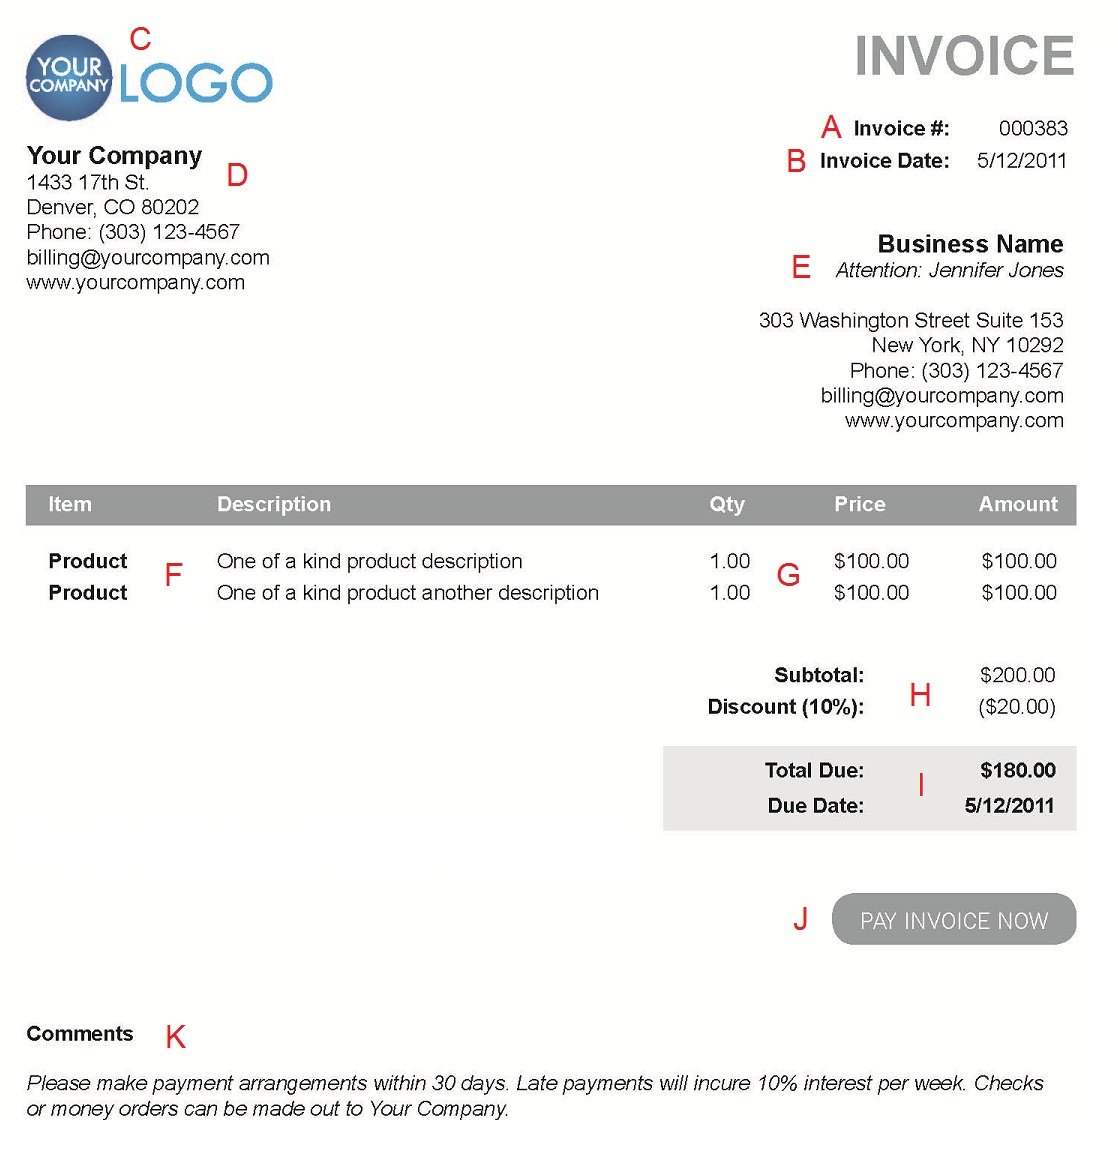 Gpwaus  Marvelous The  Different Sections Of An Electronic Payment Invoice With Entrancing A  With Astonishing What Invoice Means Also Free Invoice Sample In Addition Bmw Invoice And Invoice Template Printable As Well As Invoice Billing Software Additionally Consignment Invoice Template From Paysimplecom With Gpwaus  Entrancing The  Different Sections Of An Electronic Payment Invoice With Astonishing A  And Marvelous What Invoice Means Also Free Invoice Sample In Addition Bmw Invoice From Paysimplecom